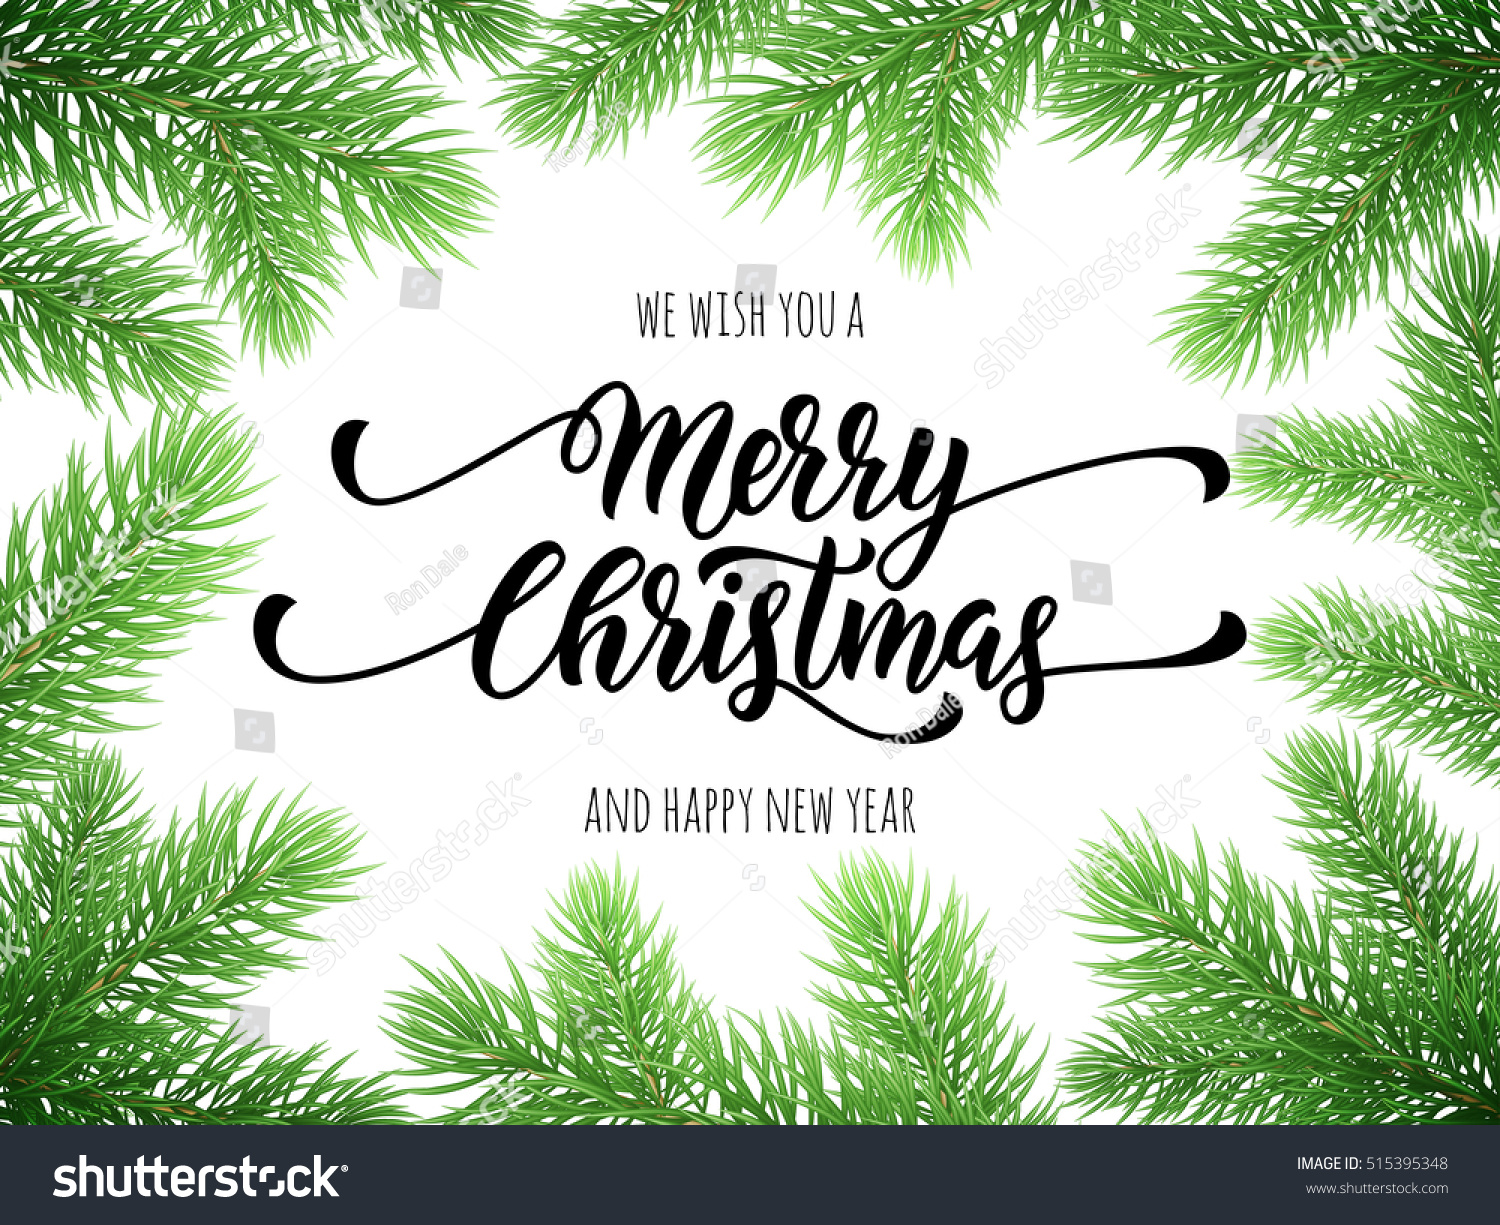 merry christmas happy new year greeting card poster template of pine and fir tree